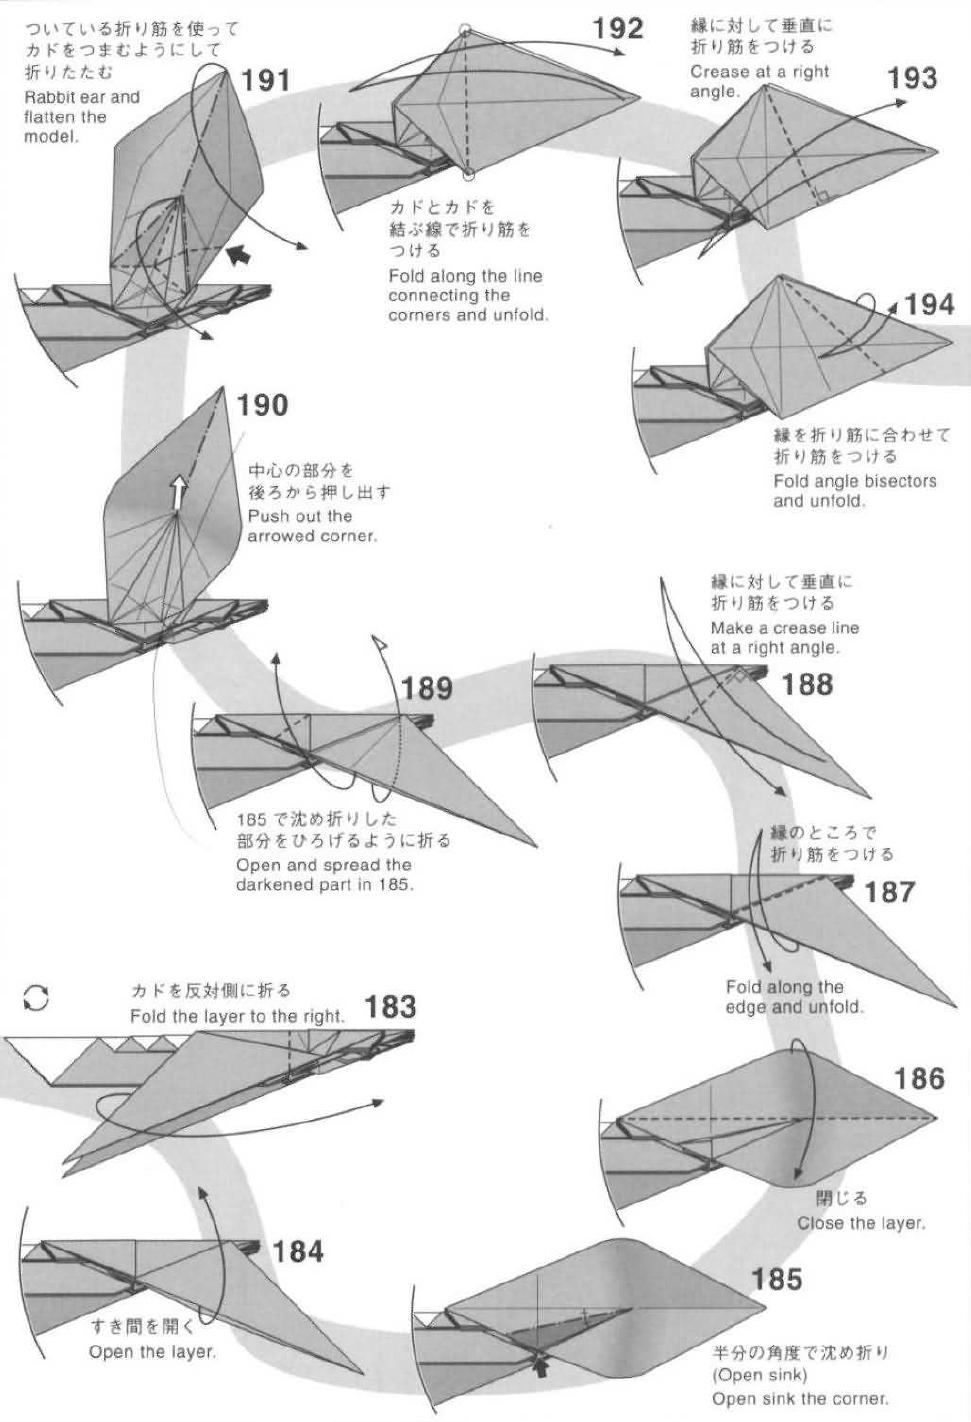 Origamichinesedragondiagram Origami Chinese Dragon How To Eastern Diagram Electrical Wiring De Affordable Recuerden Que Practicando Es Easy